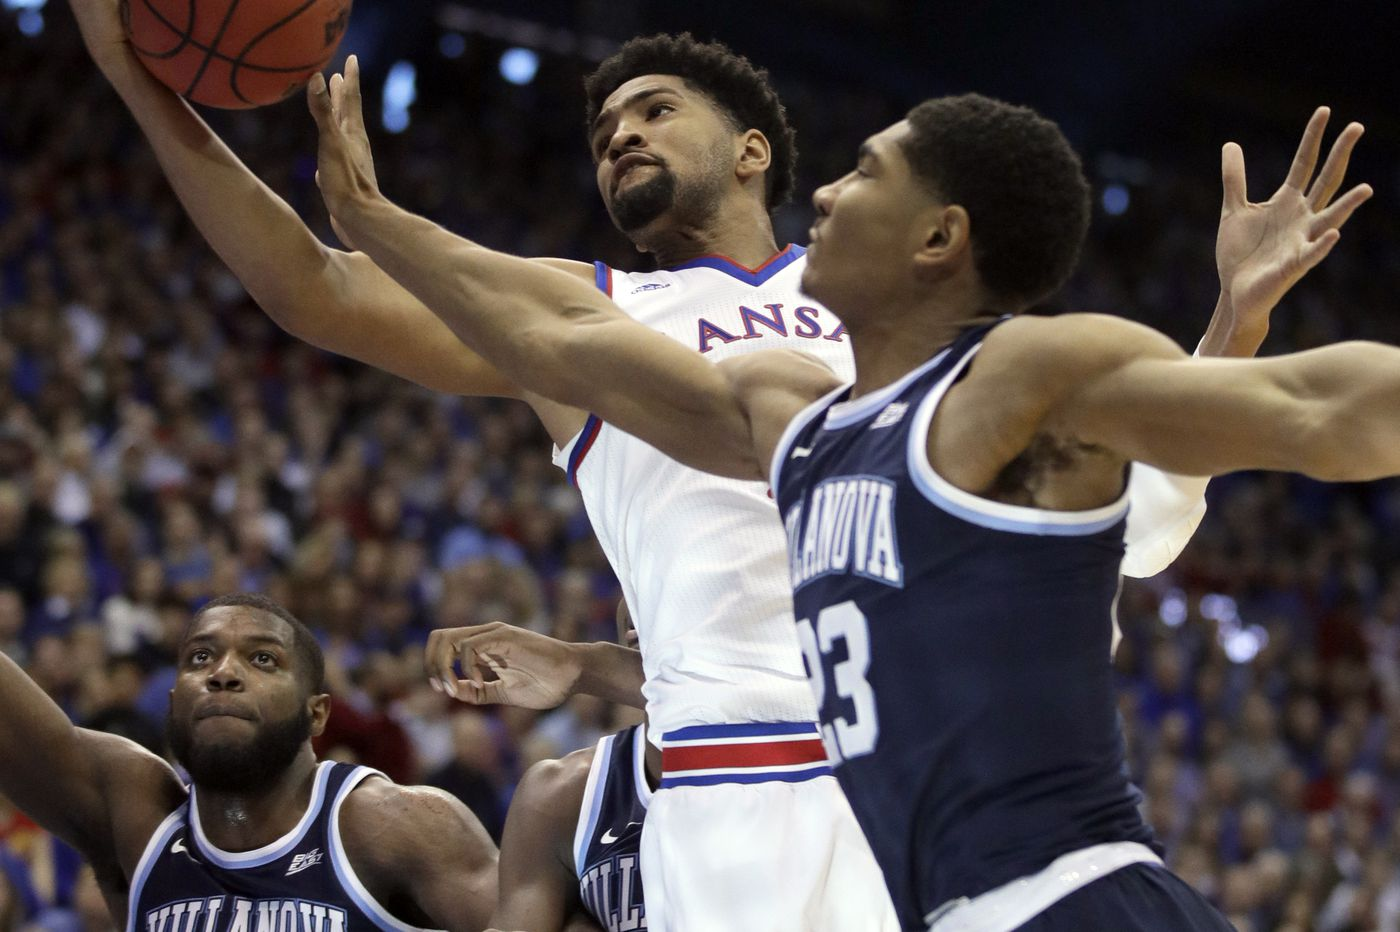 Villanova takes Kansas down to the final seconds but loses, 74-71, to top-ranked Jayhawks